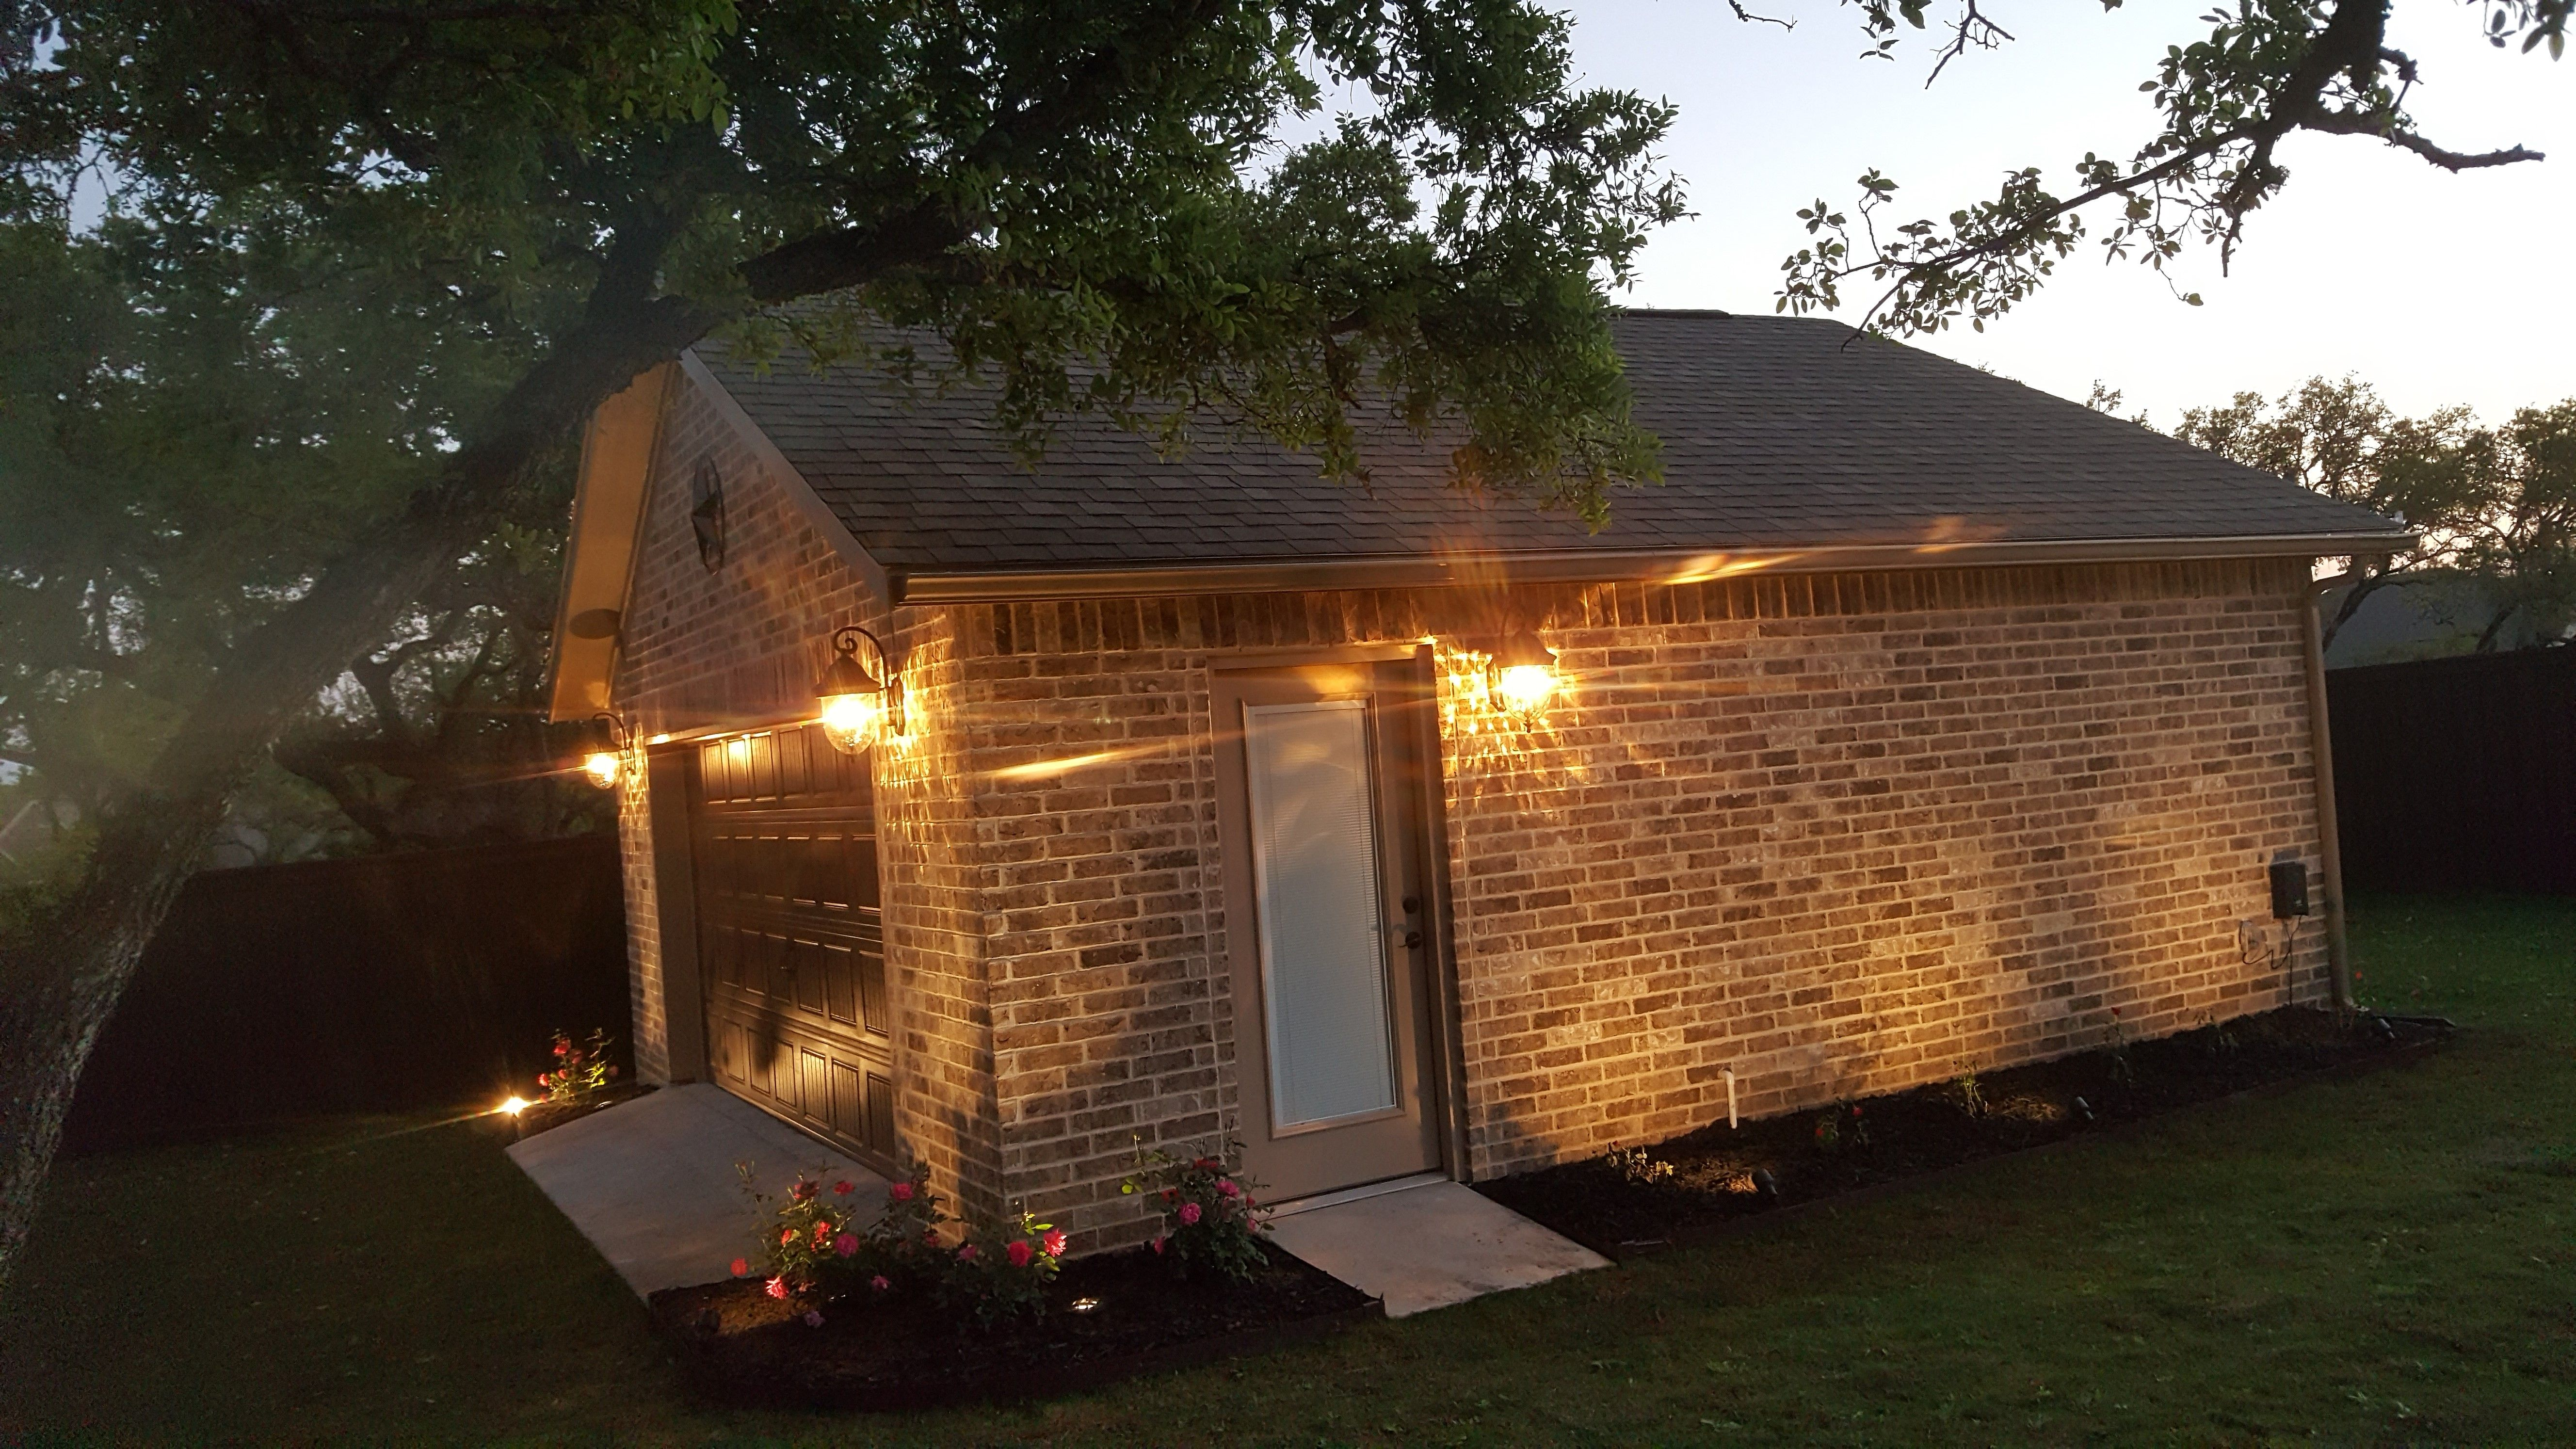 Storage Shed Construction Our Products Tuff Shed Shed Construction Exterior Brick Tuff Shed